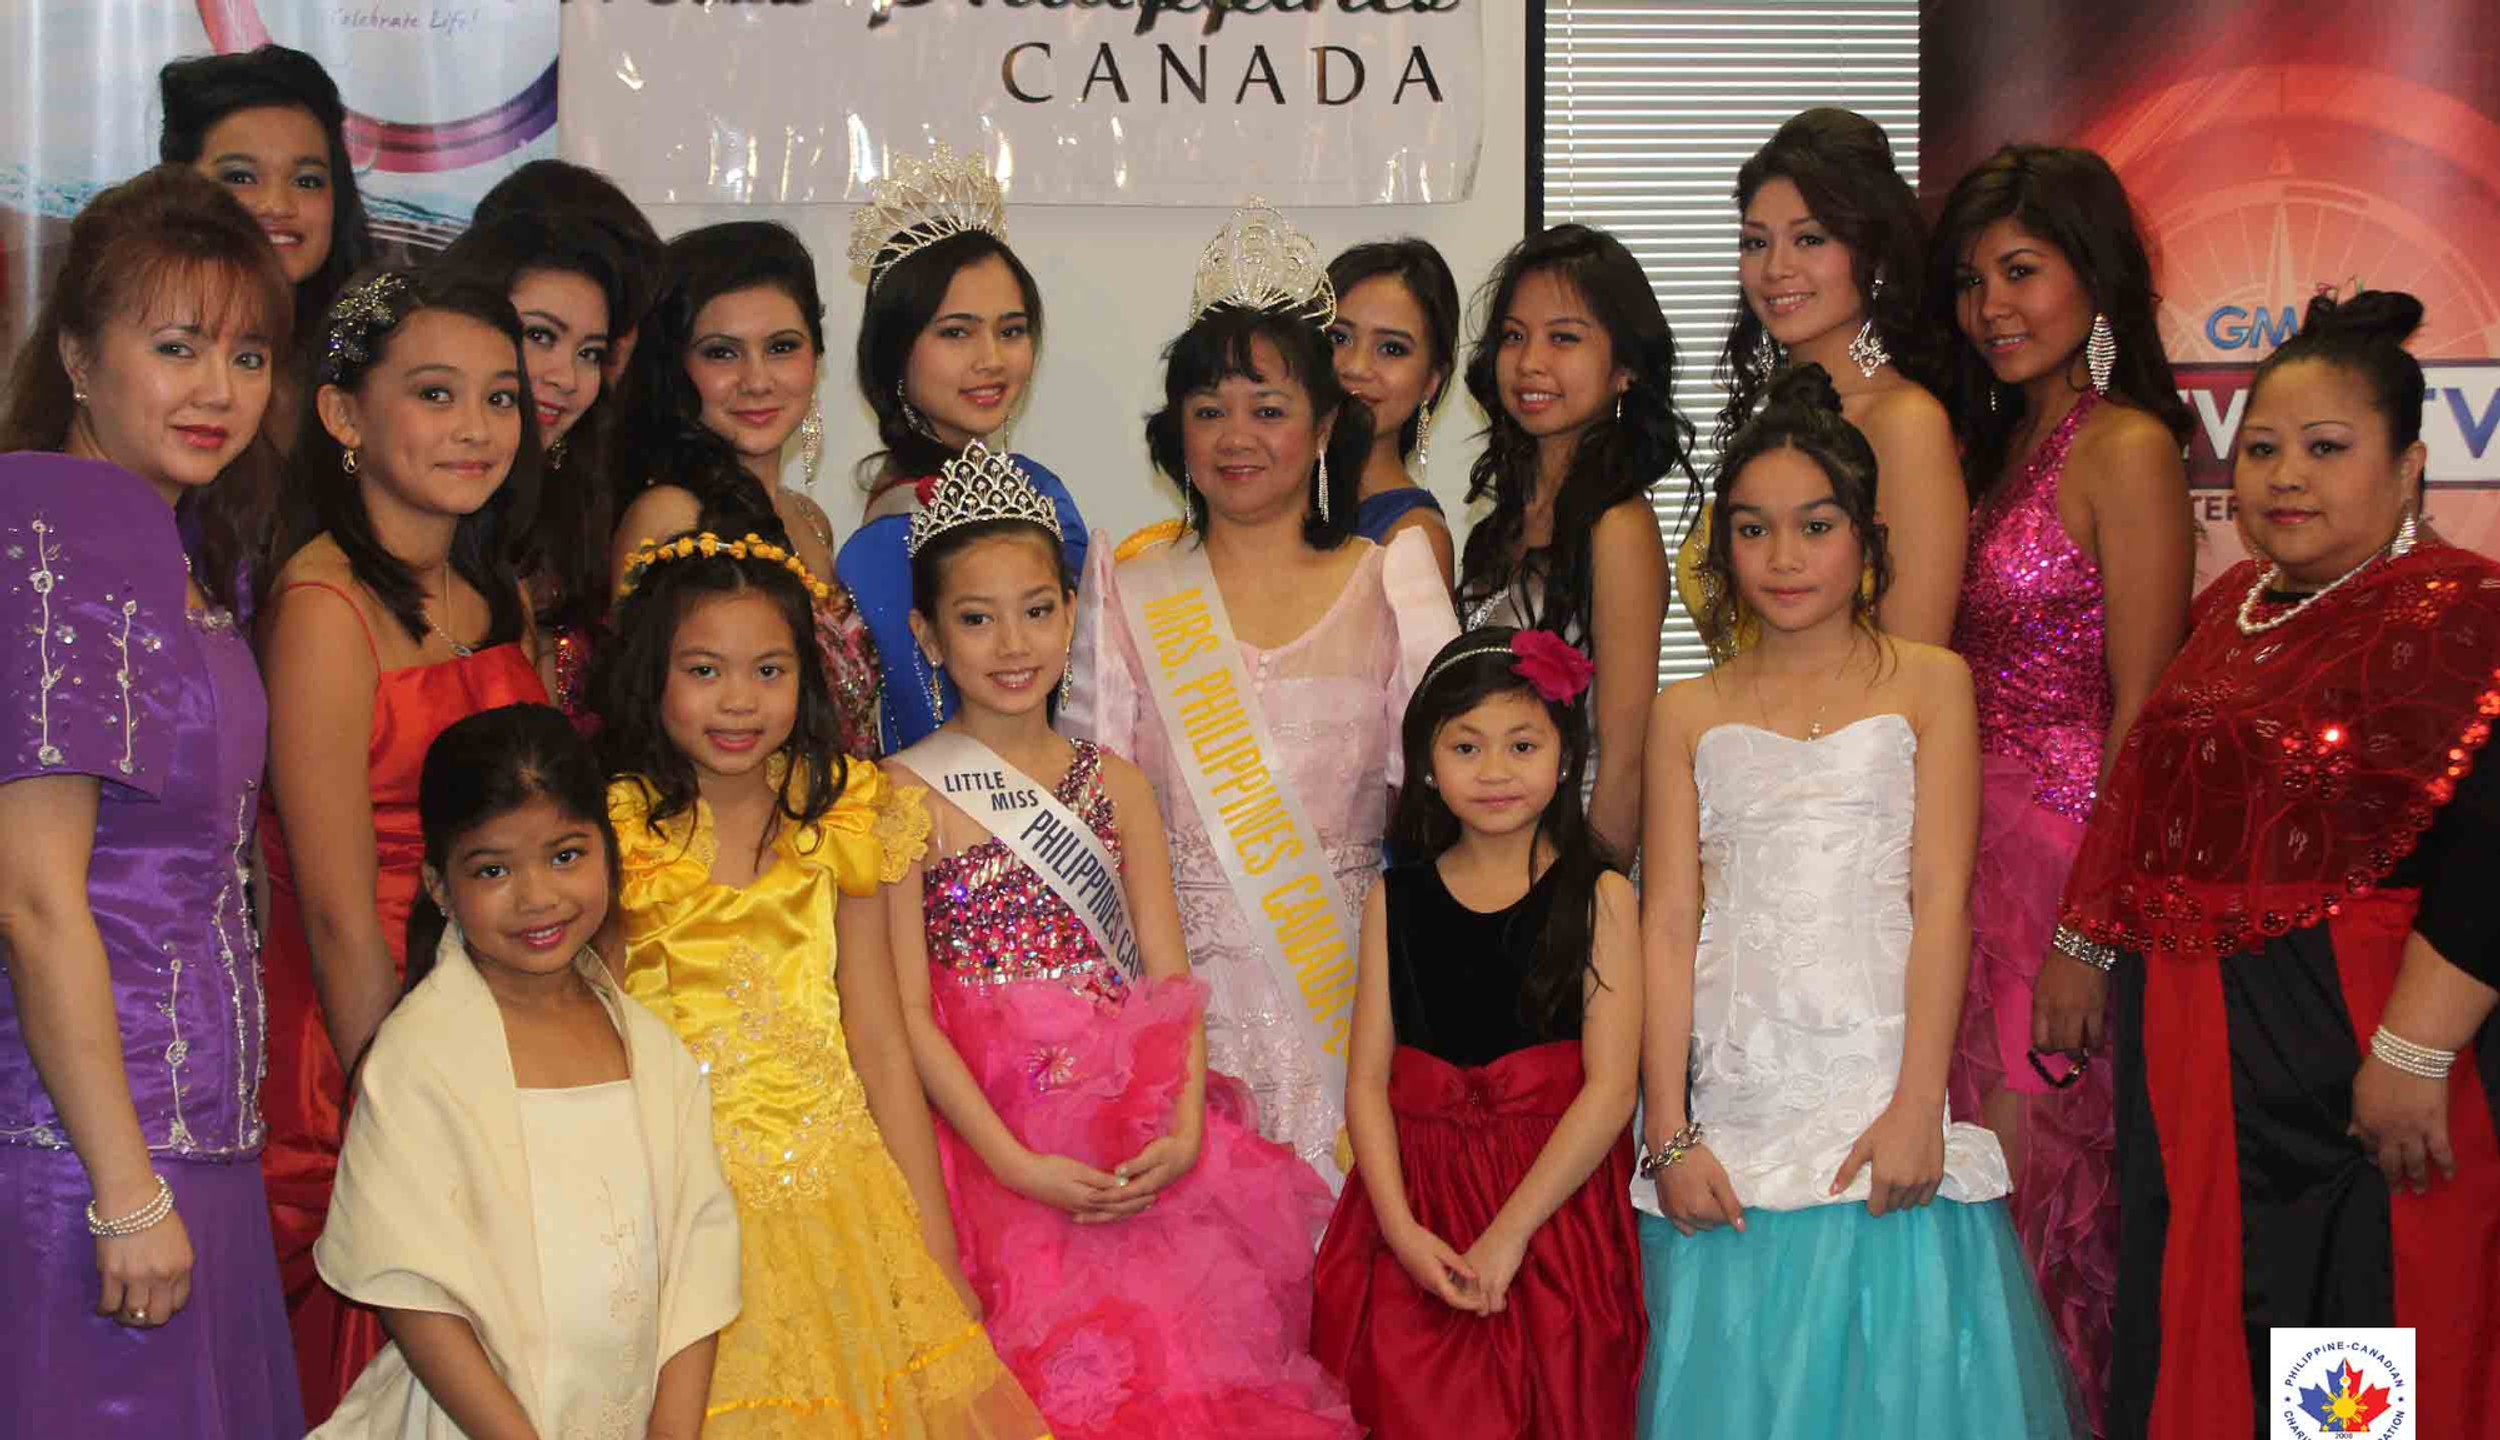 Our 2013 Candidates! With past winners - Arianna Pantaleon, Little Miss Philippines Canada 2012; June Javier, Mrs. Philippines Canada 2012 and Alev Usta, Miss Philippines Canada 2013. Good luck everyone!